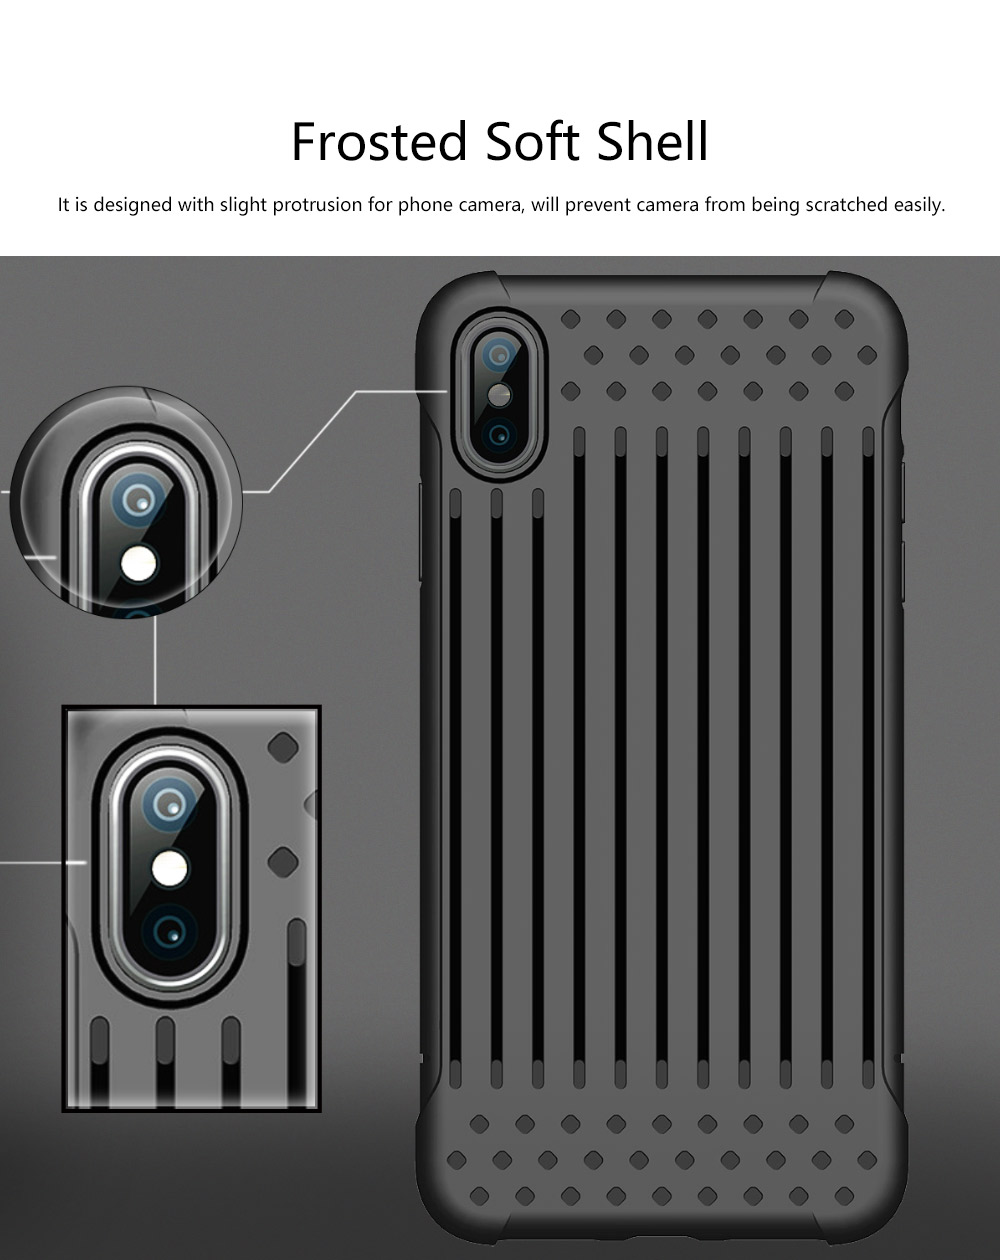 Stripe Phone Protective Case, Anti-fall Back Cover Anti-Scratch Shell for iPhone X, XS with Venting Holes 4